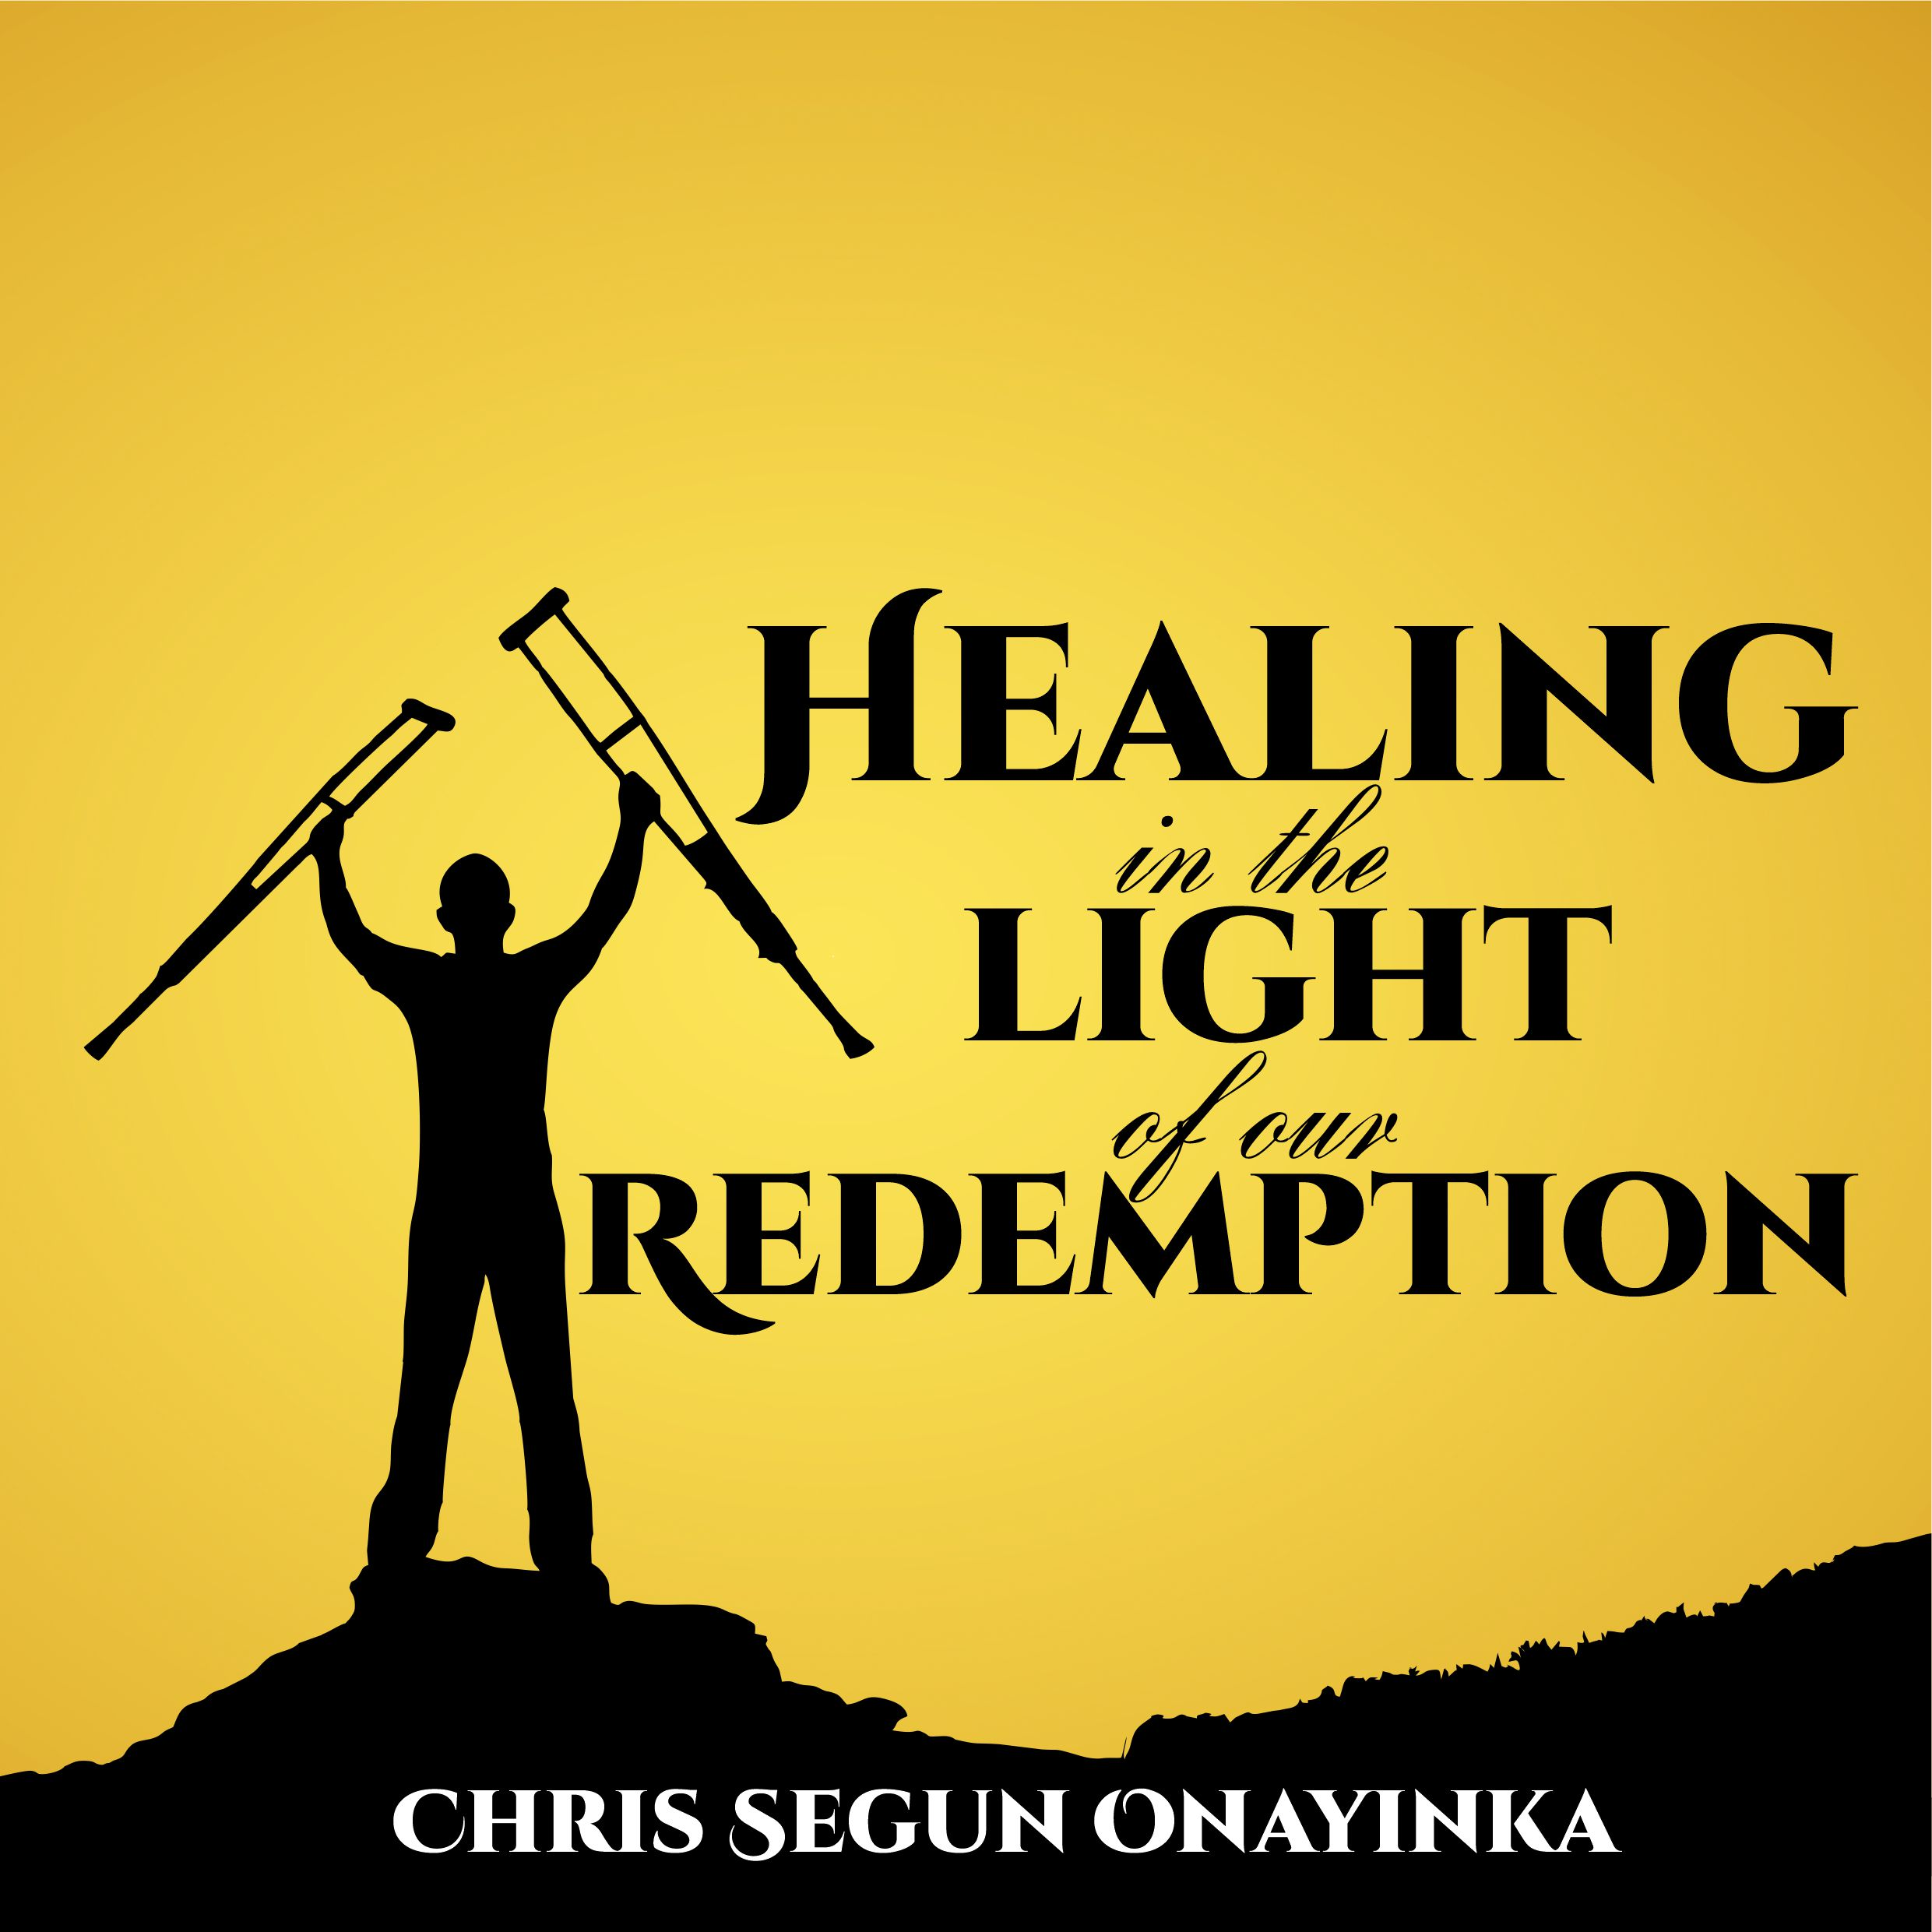 Healing in the light of our Redemption